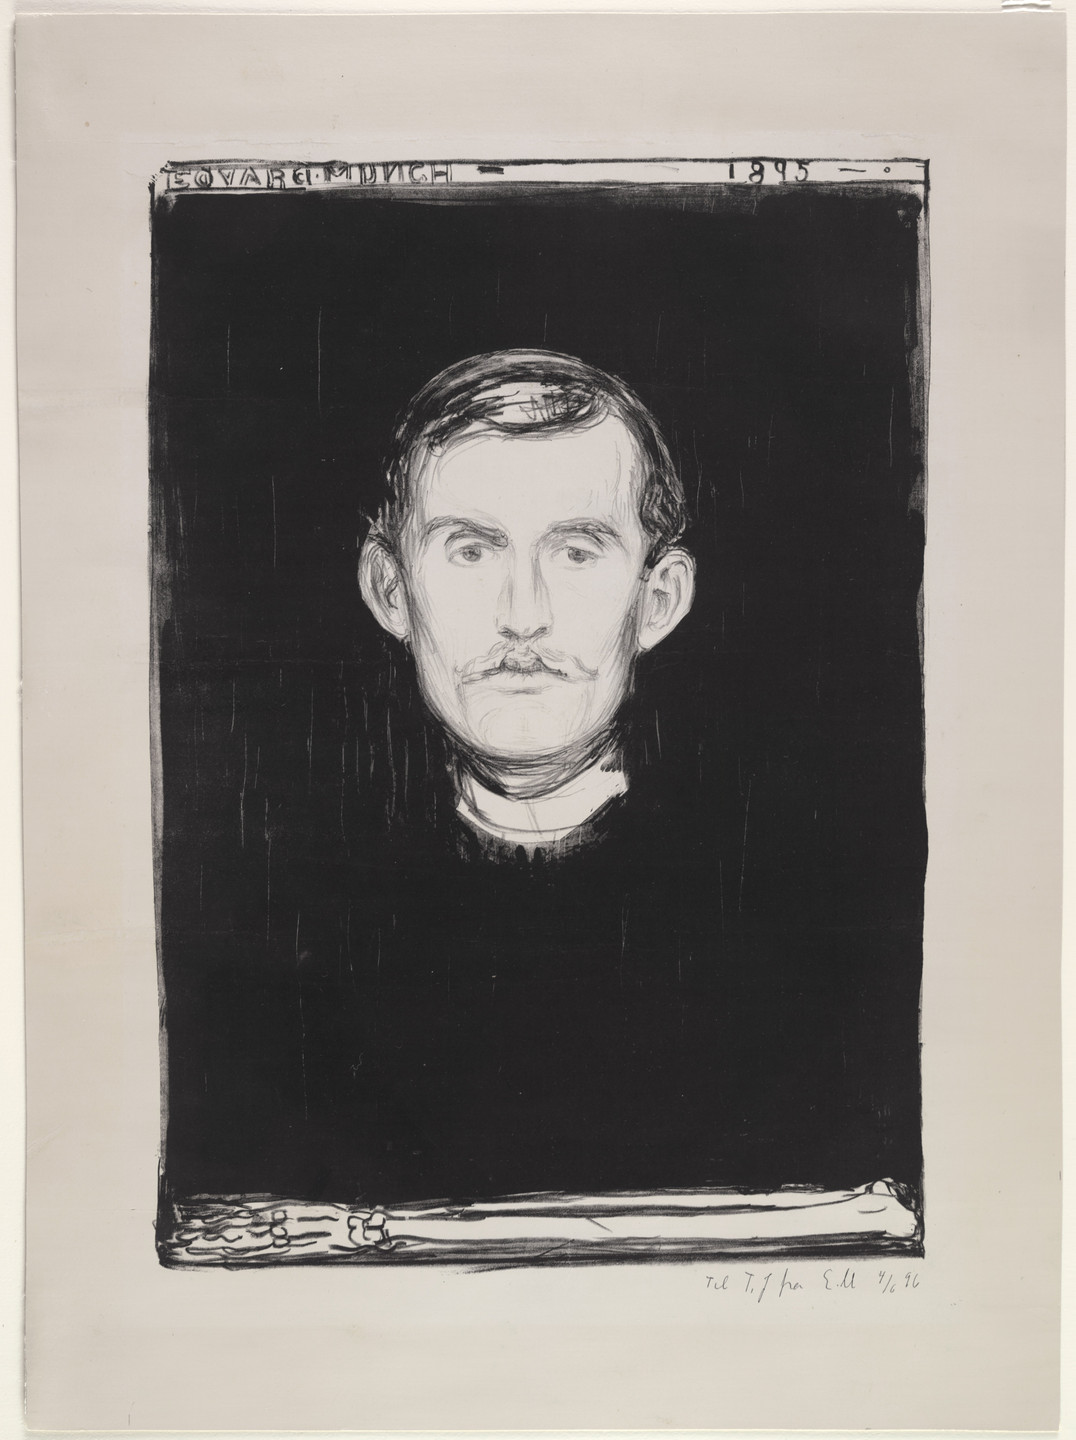 Edvard Munch. Self Portrait. 1895, signed 1896